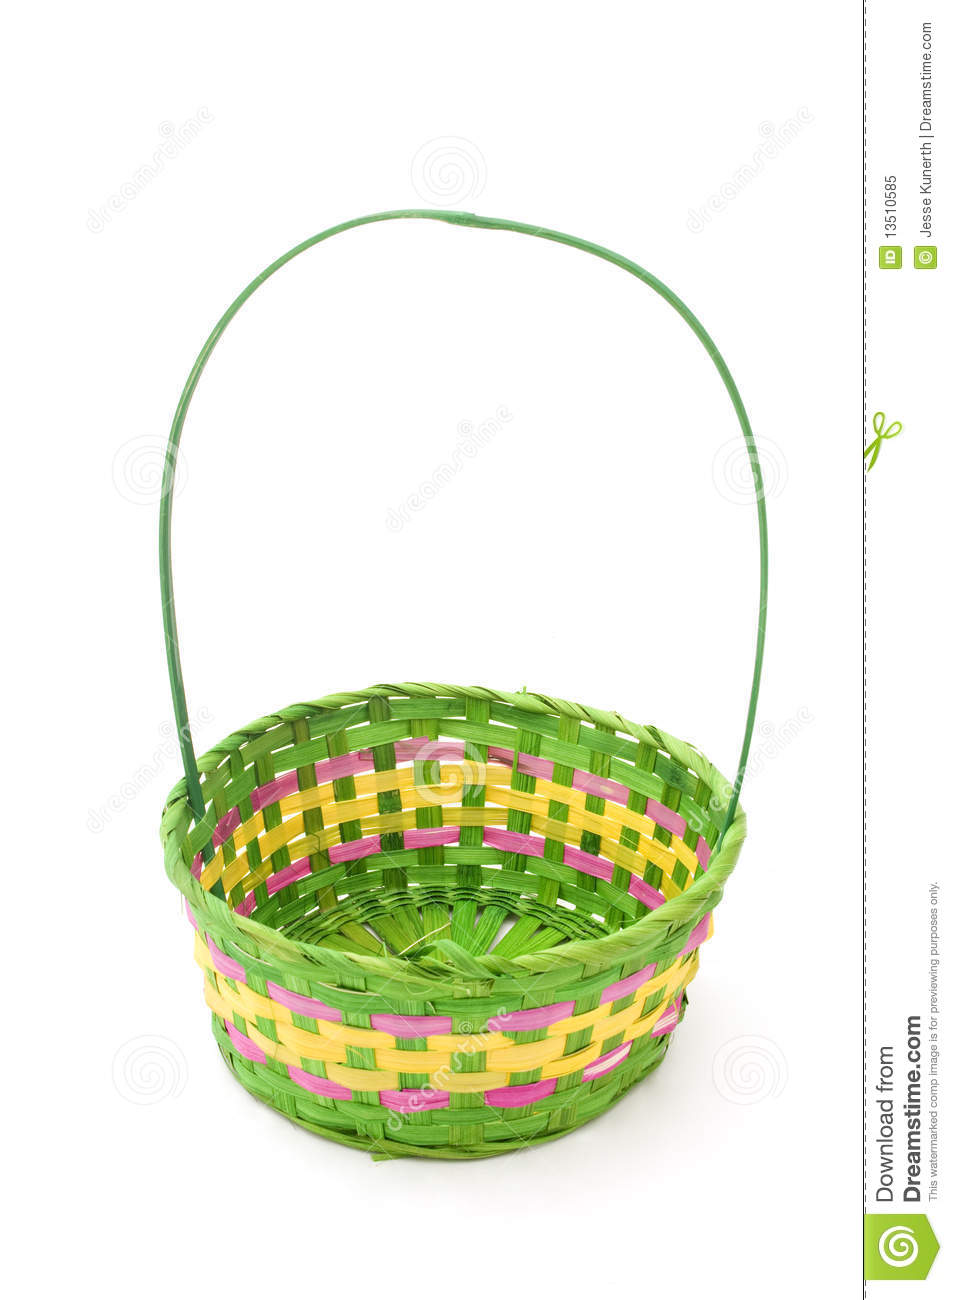 Empty easter basket clipart graphic royalty free download Collection Empty Easter Baskets Pictures - Best easter gift ever graphic royalty free download